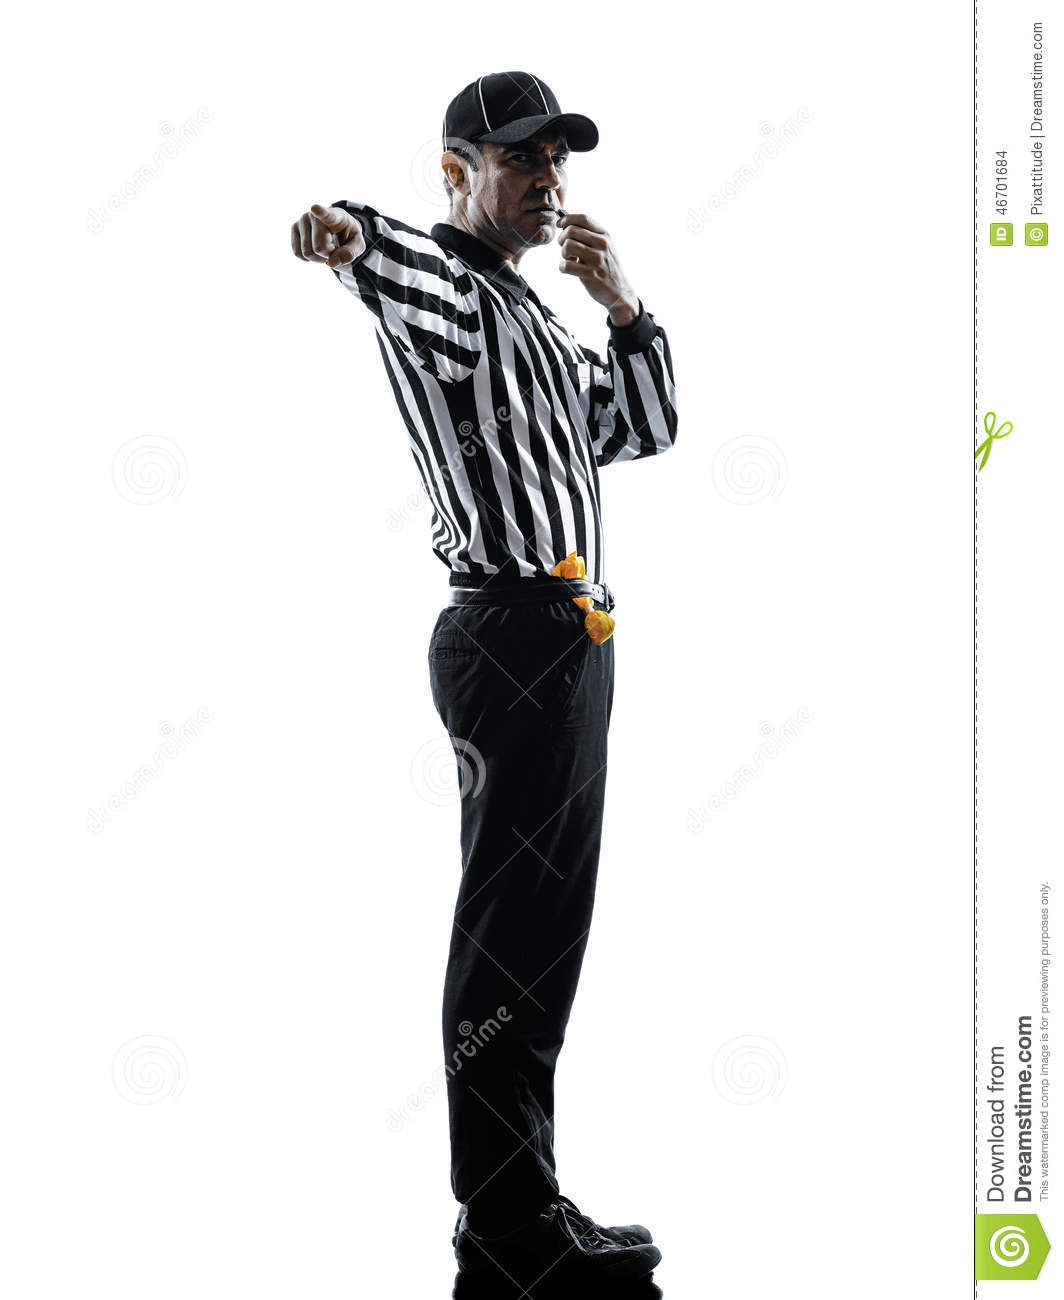 American Football Referee Whistling Silhouette Stock Photo